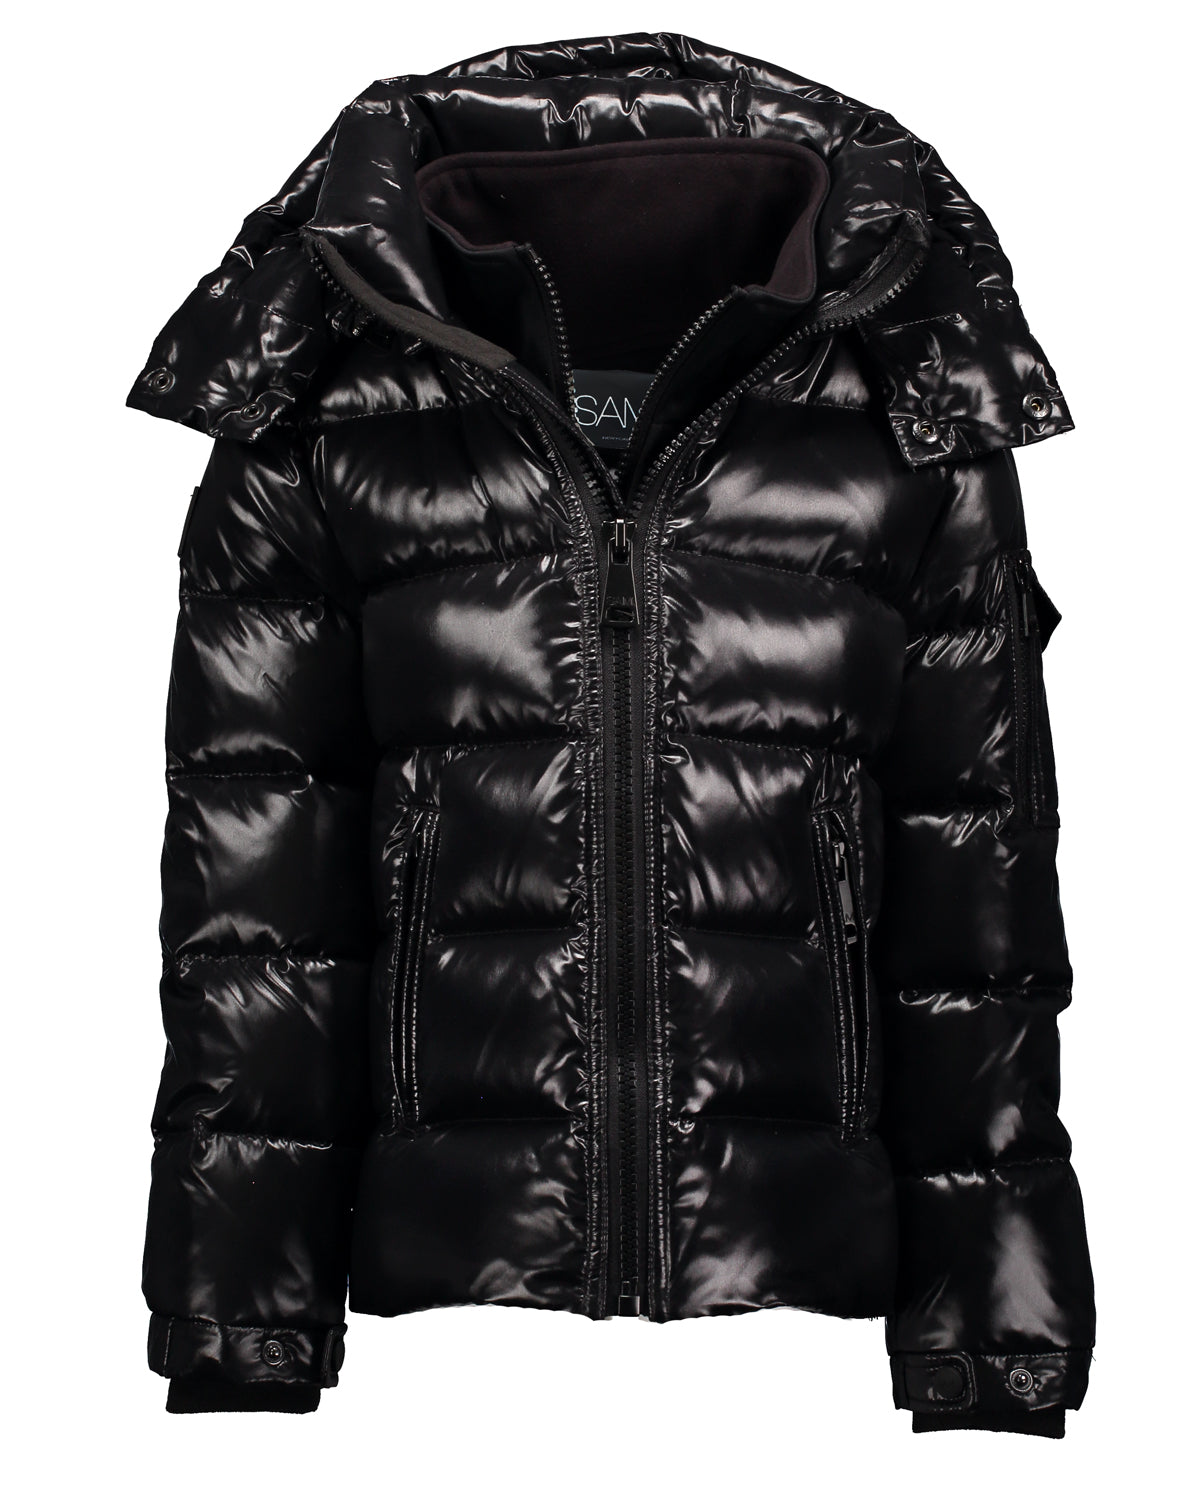 SAM. Glacier Detachable Hood Bubble Jacket